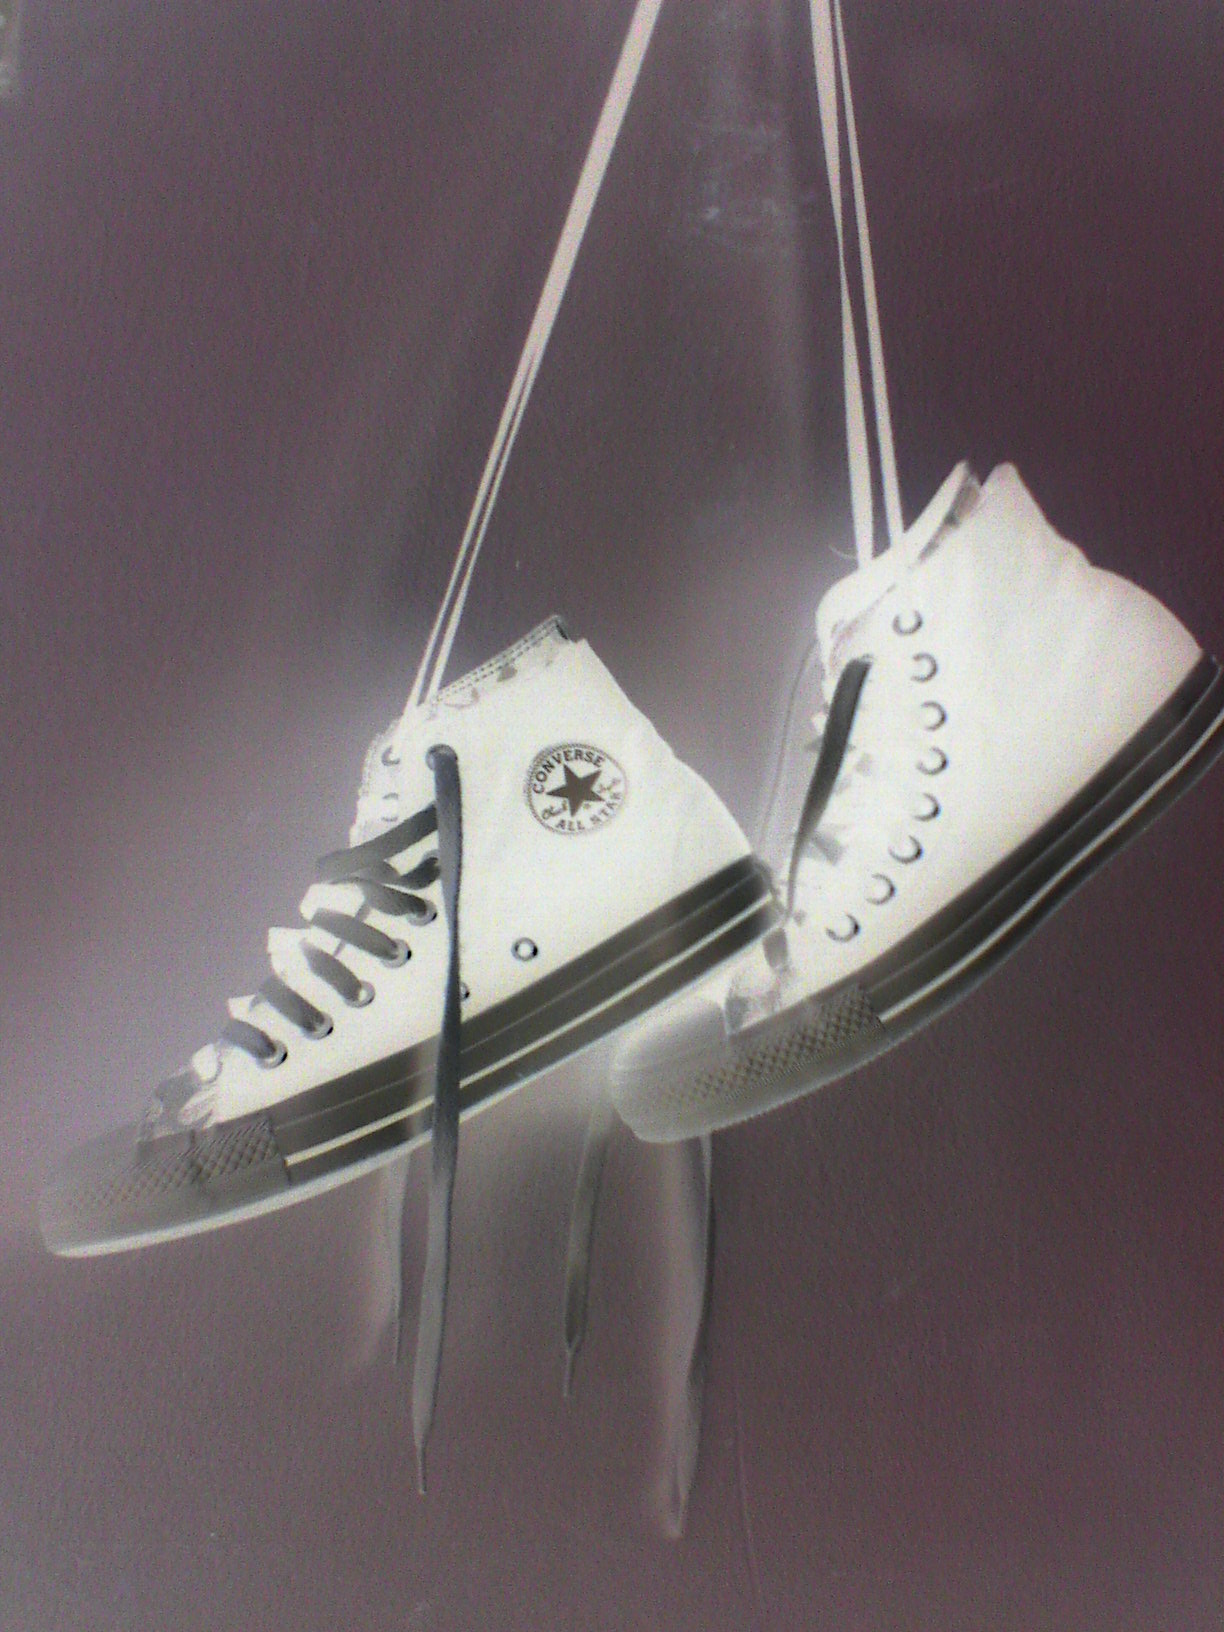 File:Converse All Star 02248.JPG Wikimedia Commons